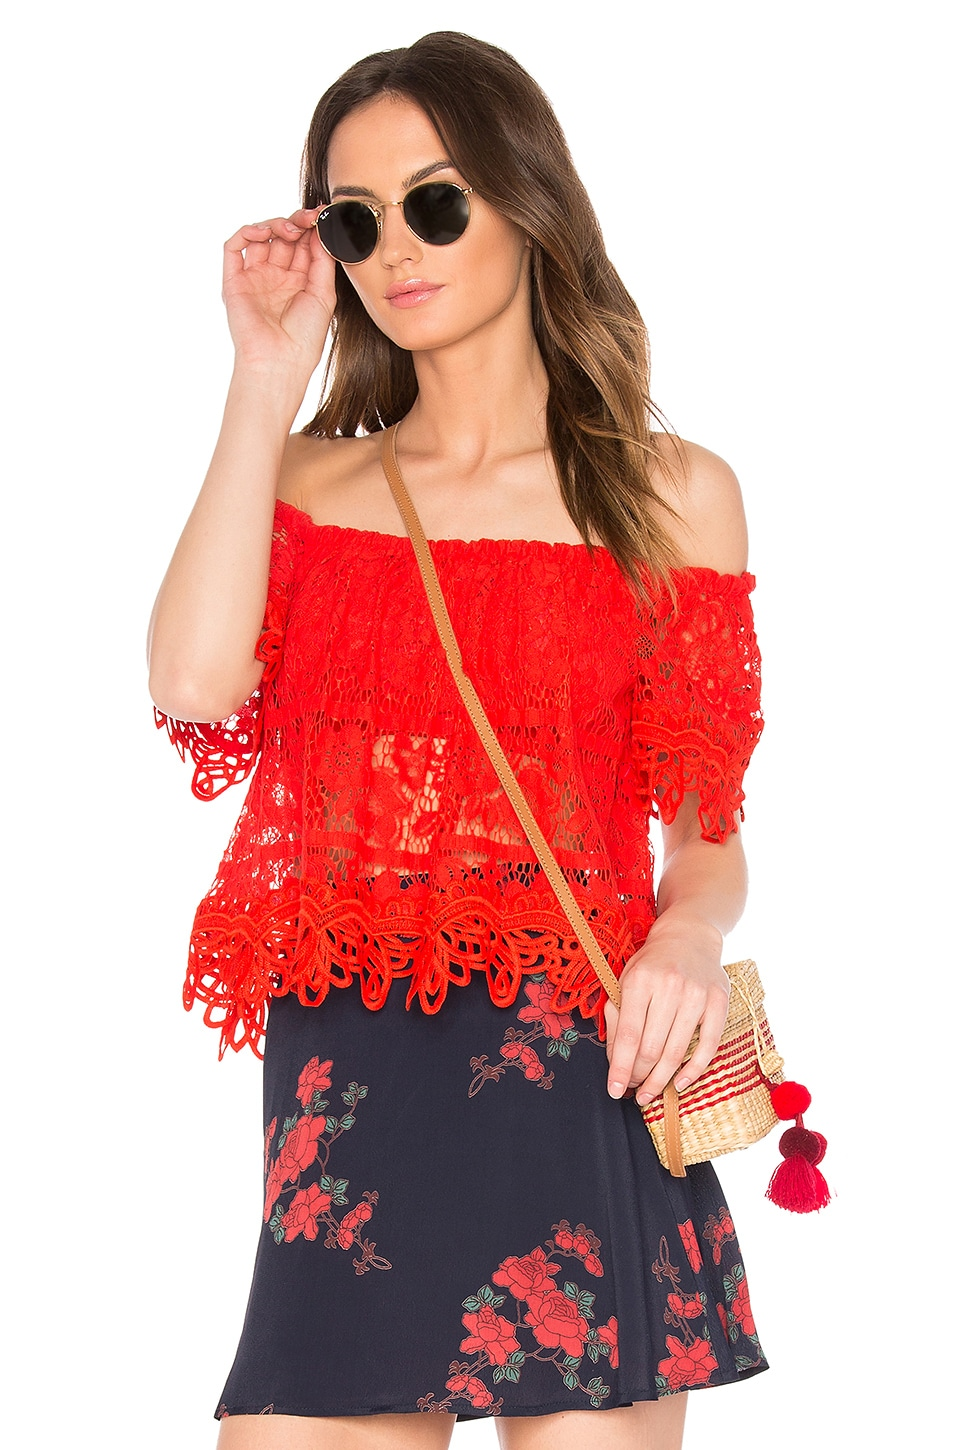 Free People Sweet Dreams Lace Crop Top in Bright Red